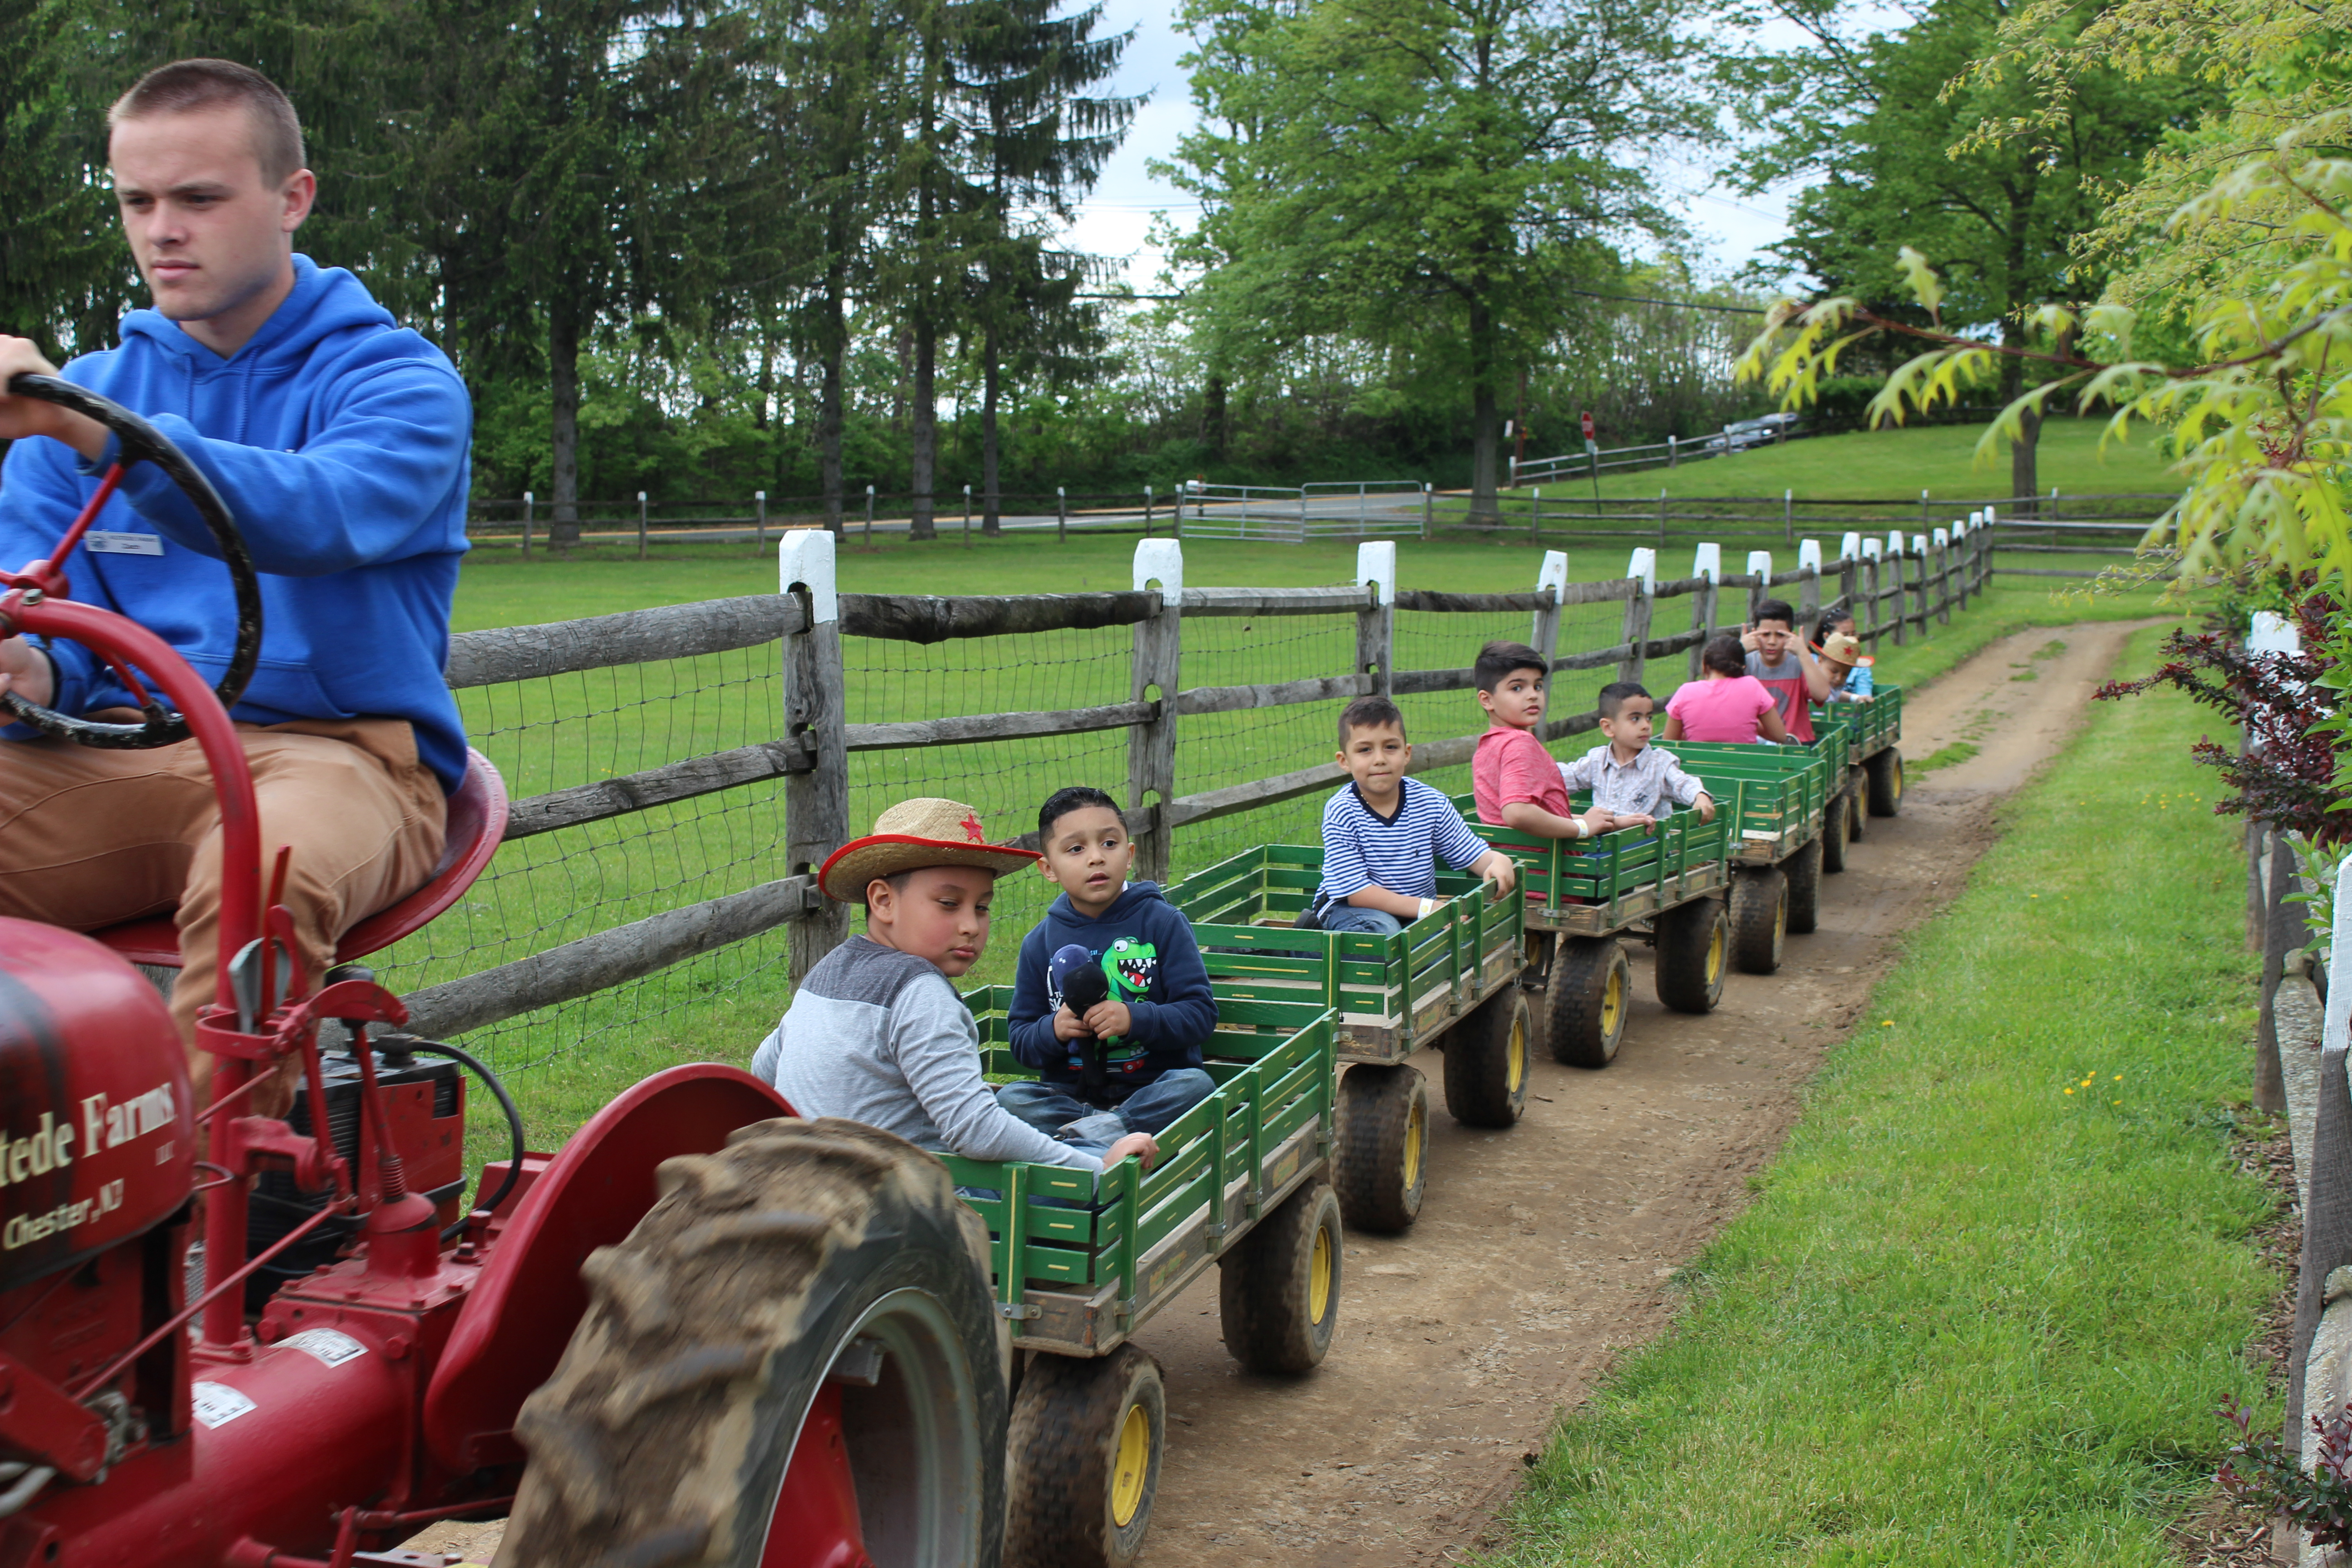 Tractor rides are very popular on U Pick weekends at Alstede Farms